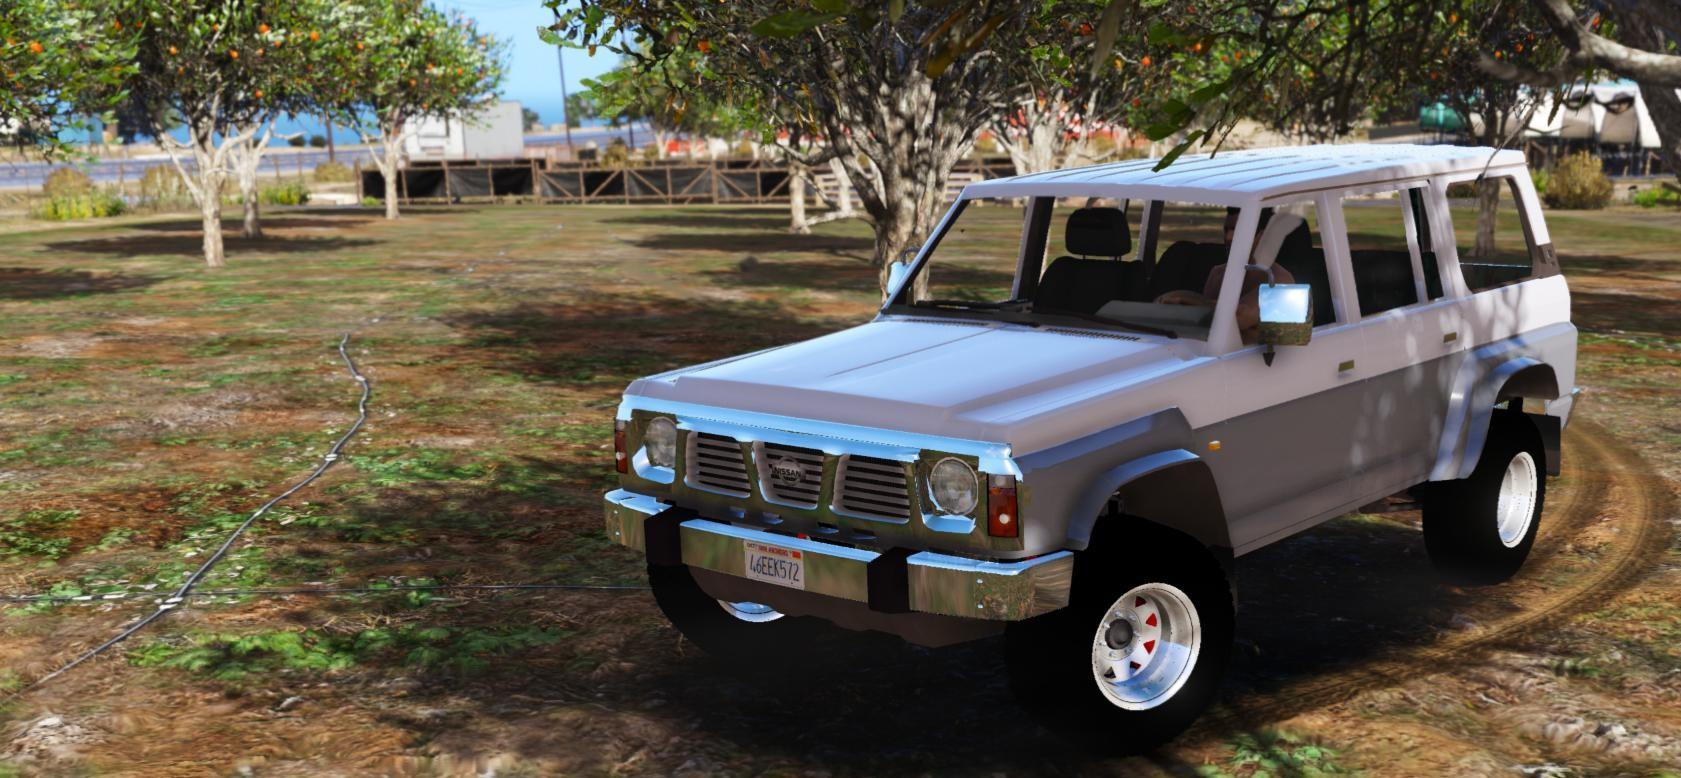 nissan patrol safari y60 off road 1996 replace 8 extras gta5. Black Bedroom Furniture Sets. Home Design Ideas